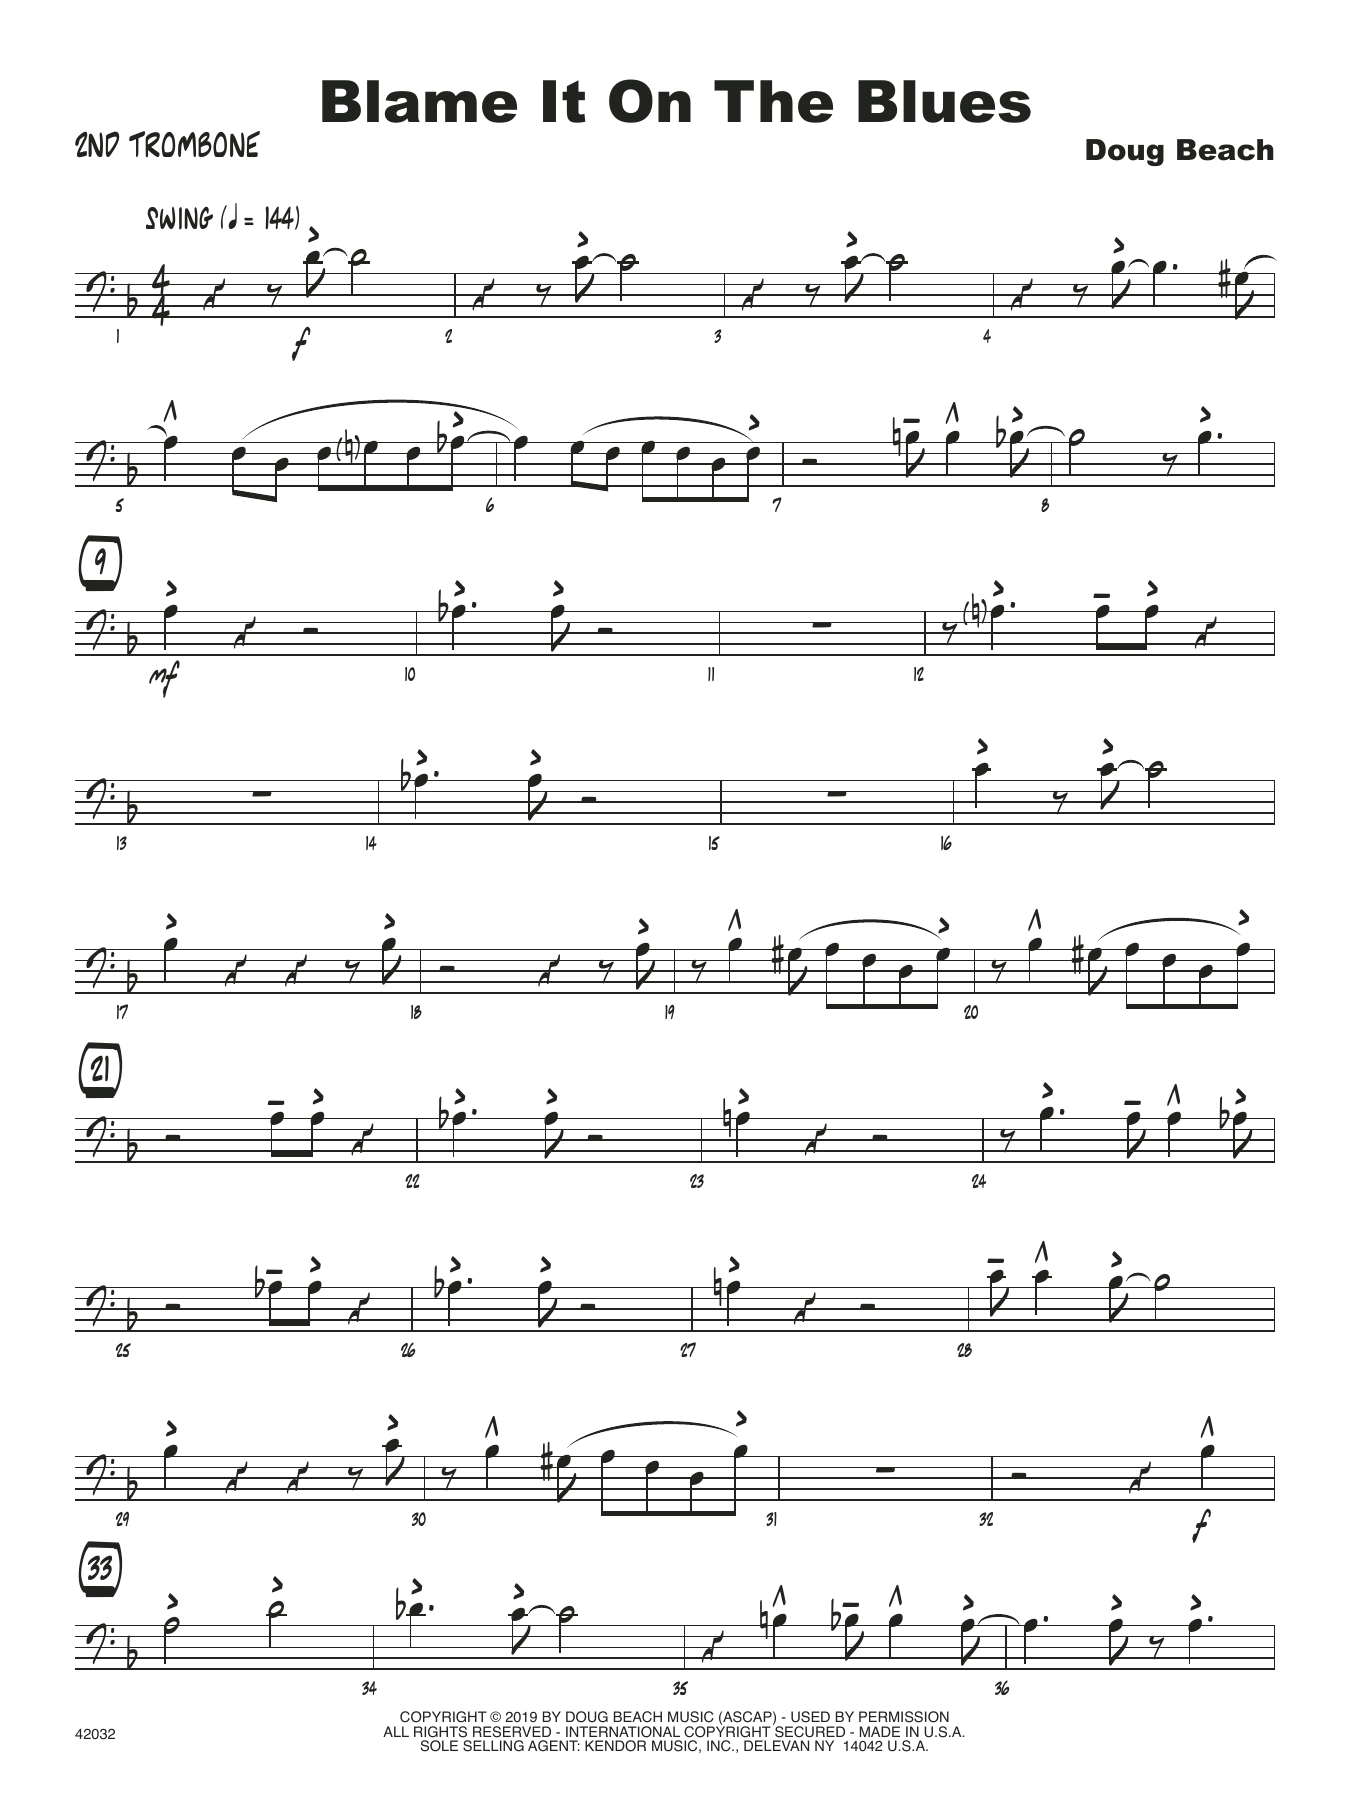 Doug Beach Blame It On The Blues - 2nd Trombone sheet music notes and chords. Download Printable PDF.